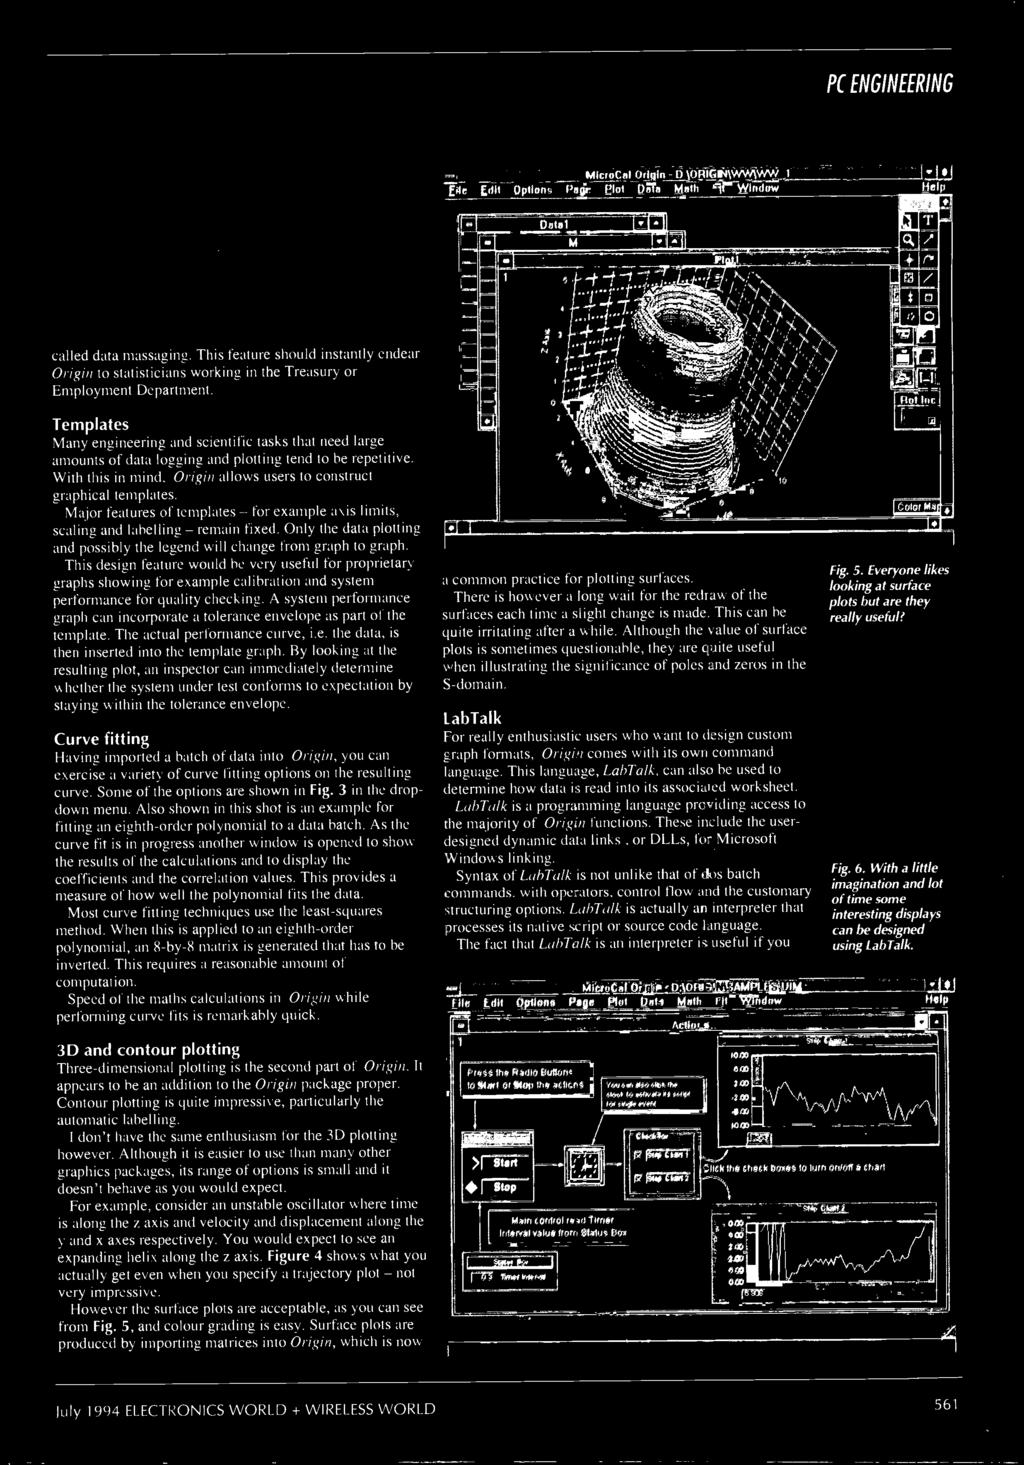 World Wireless Pdf 1991 Mitsubishi Laser Talon Fuse Box Diagram A System Performance Graph Can Incorporate Tolerance Envelope As Part Of The Template